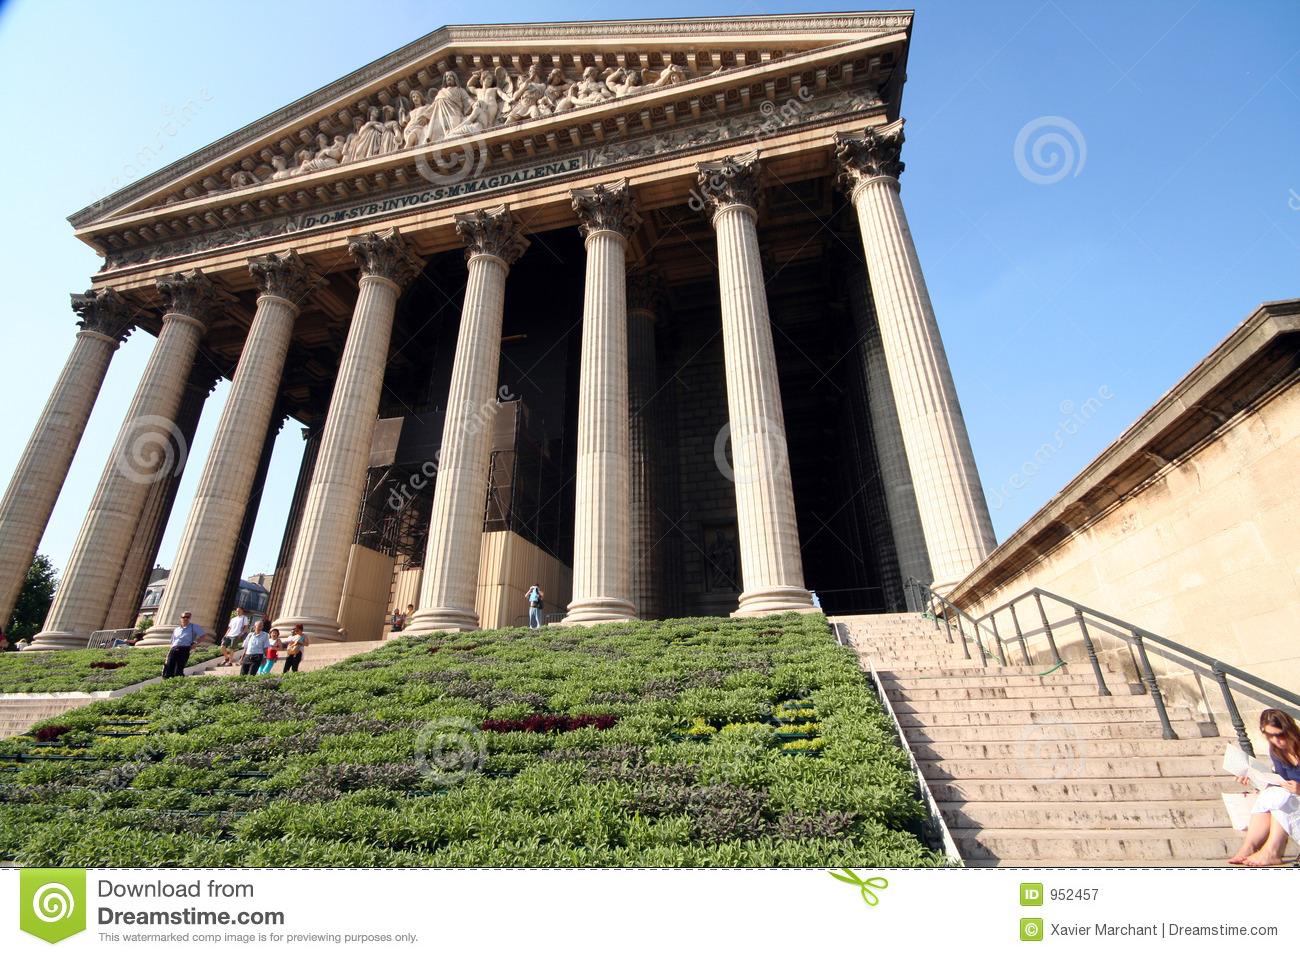 La madeleine monument royalty free stock photography image 952457 - Monument la madeleine ...